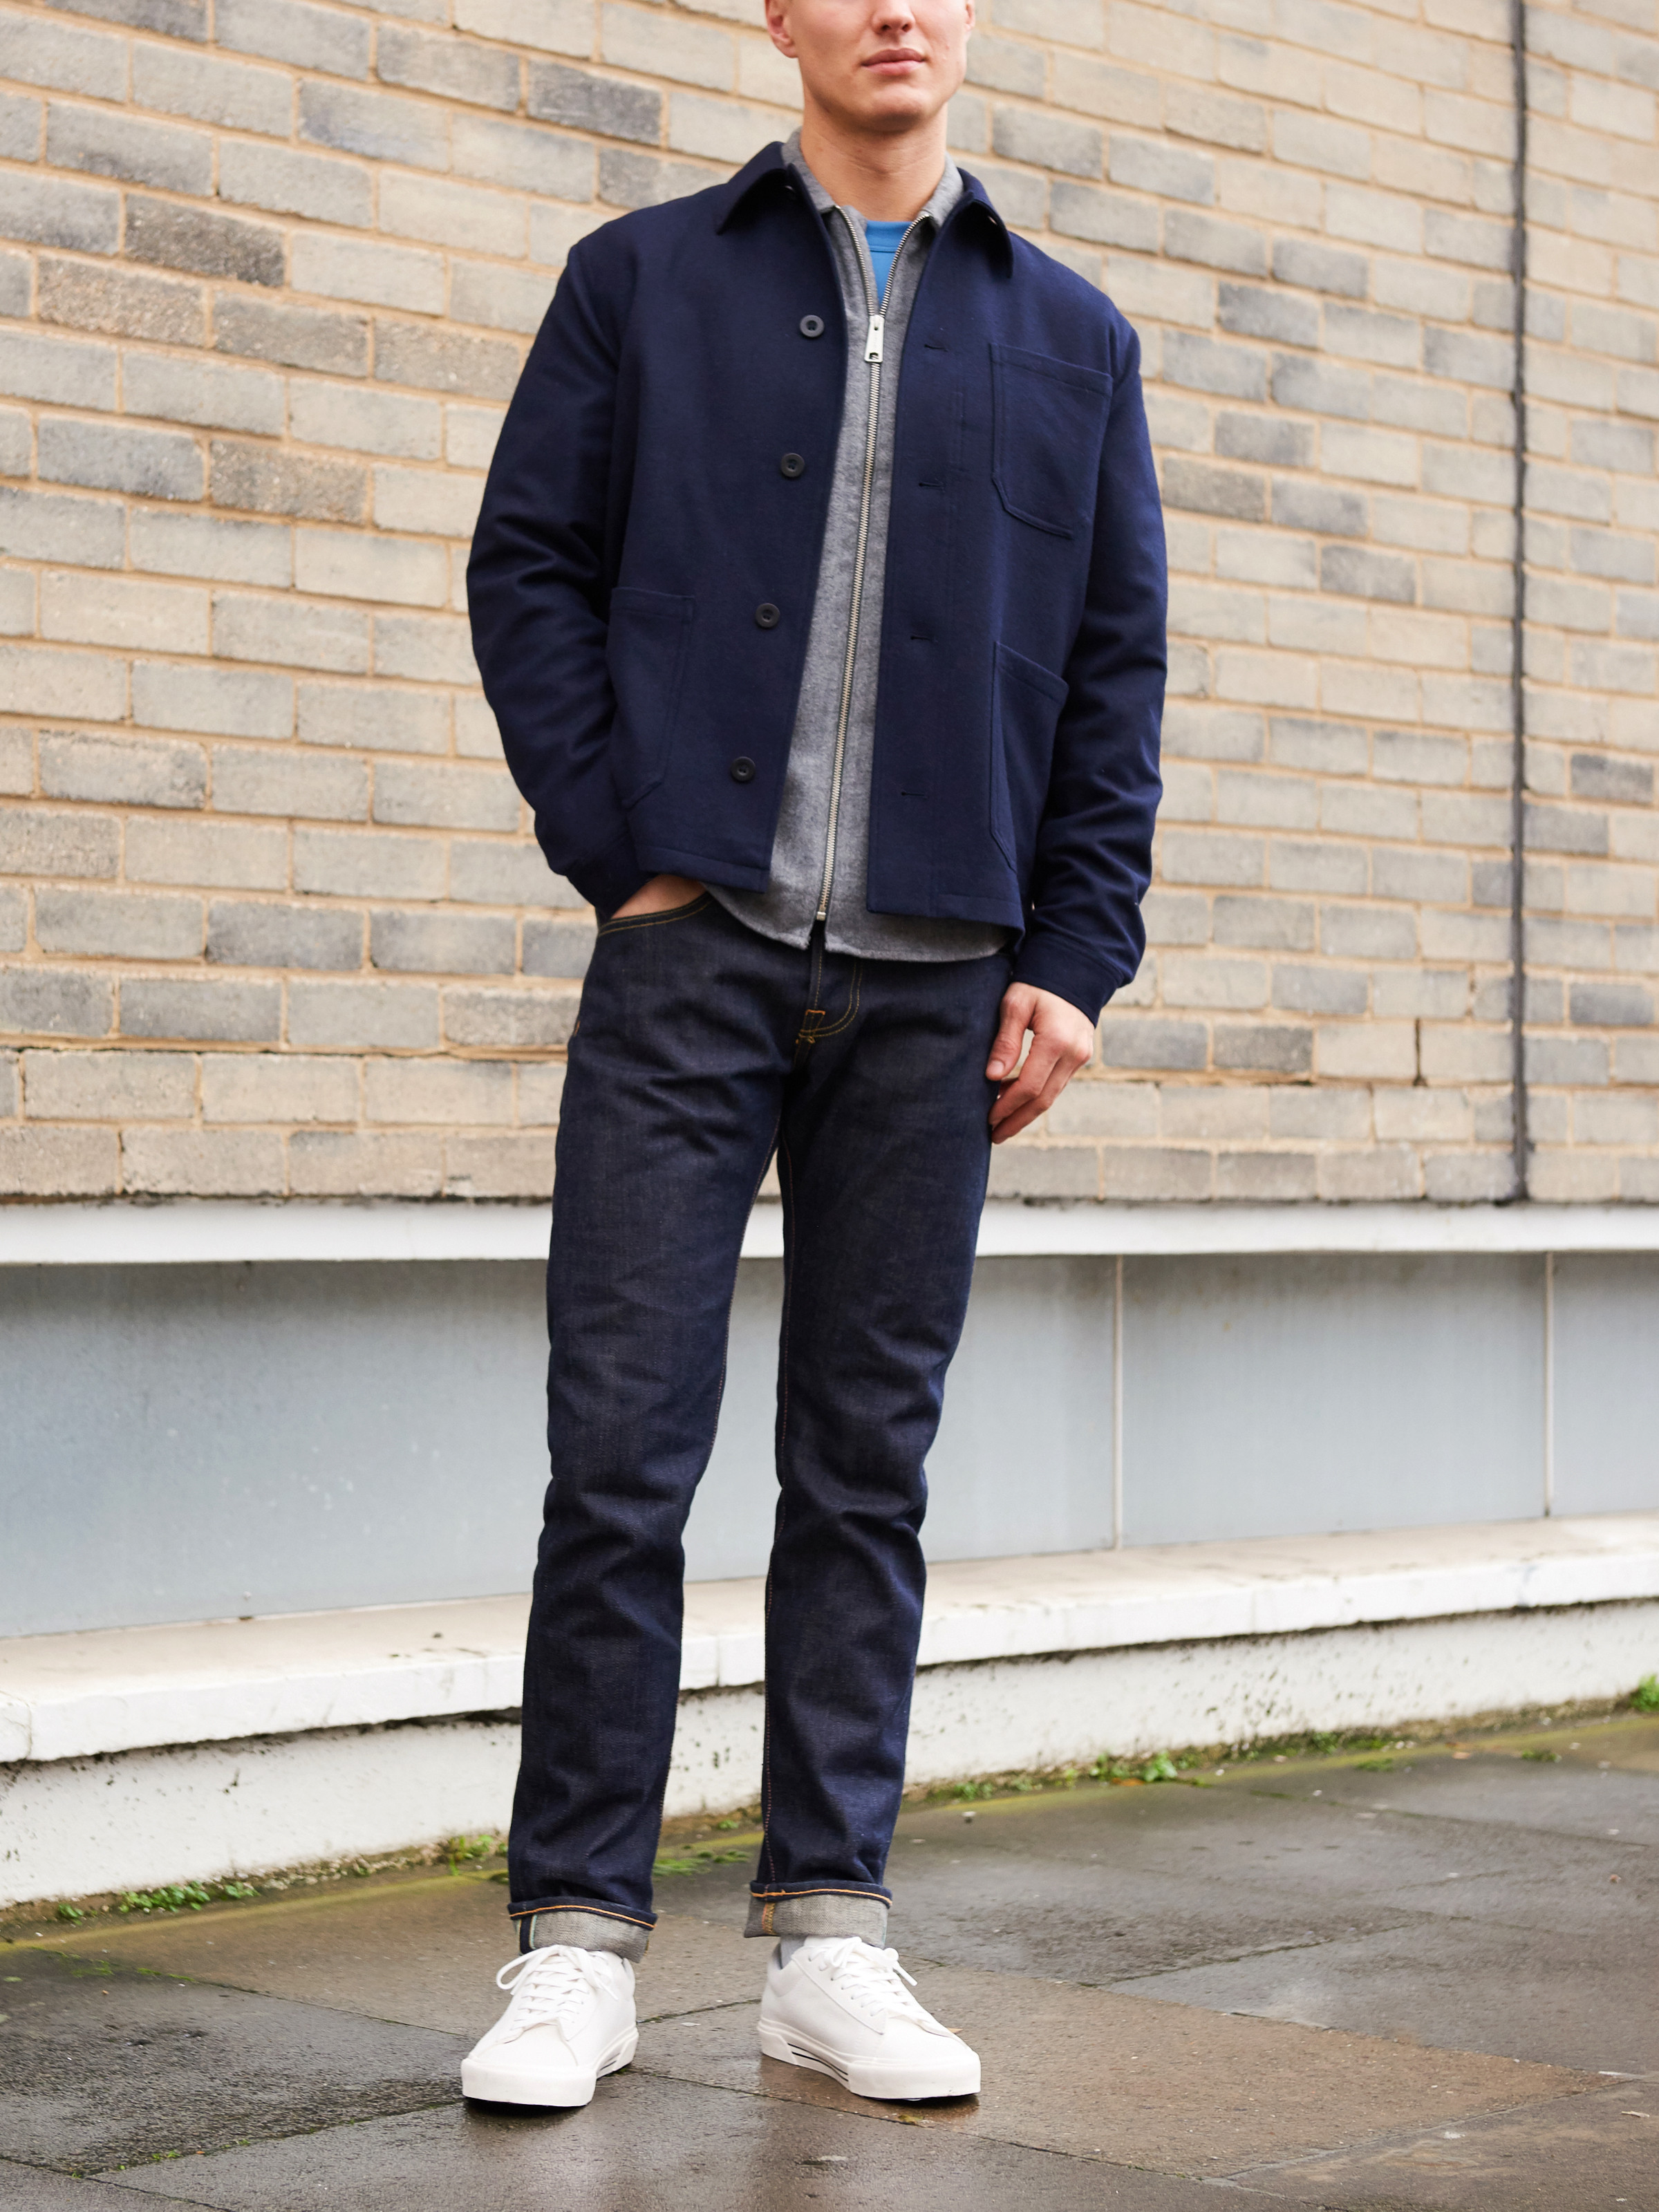 Men's outfit idea for 2021 with utility jacket, grey overshirt, bold-colored crew neck t-shirt, dark blue jeans, white sneakers. Suitable for fall and winter.